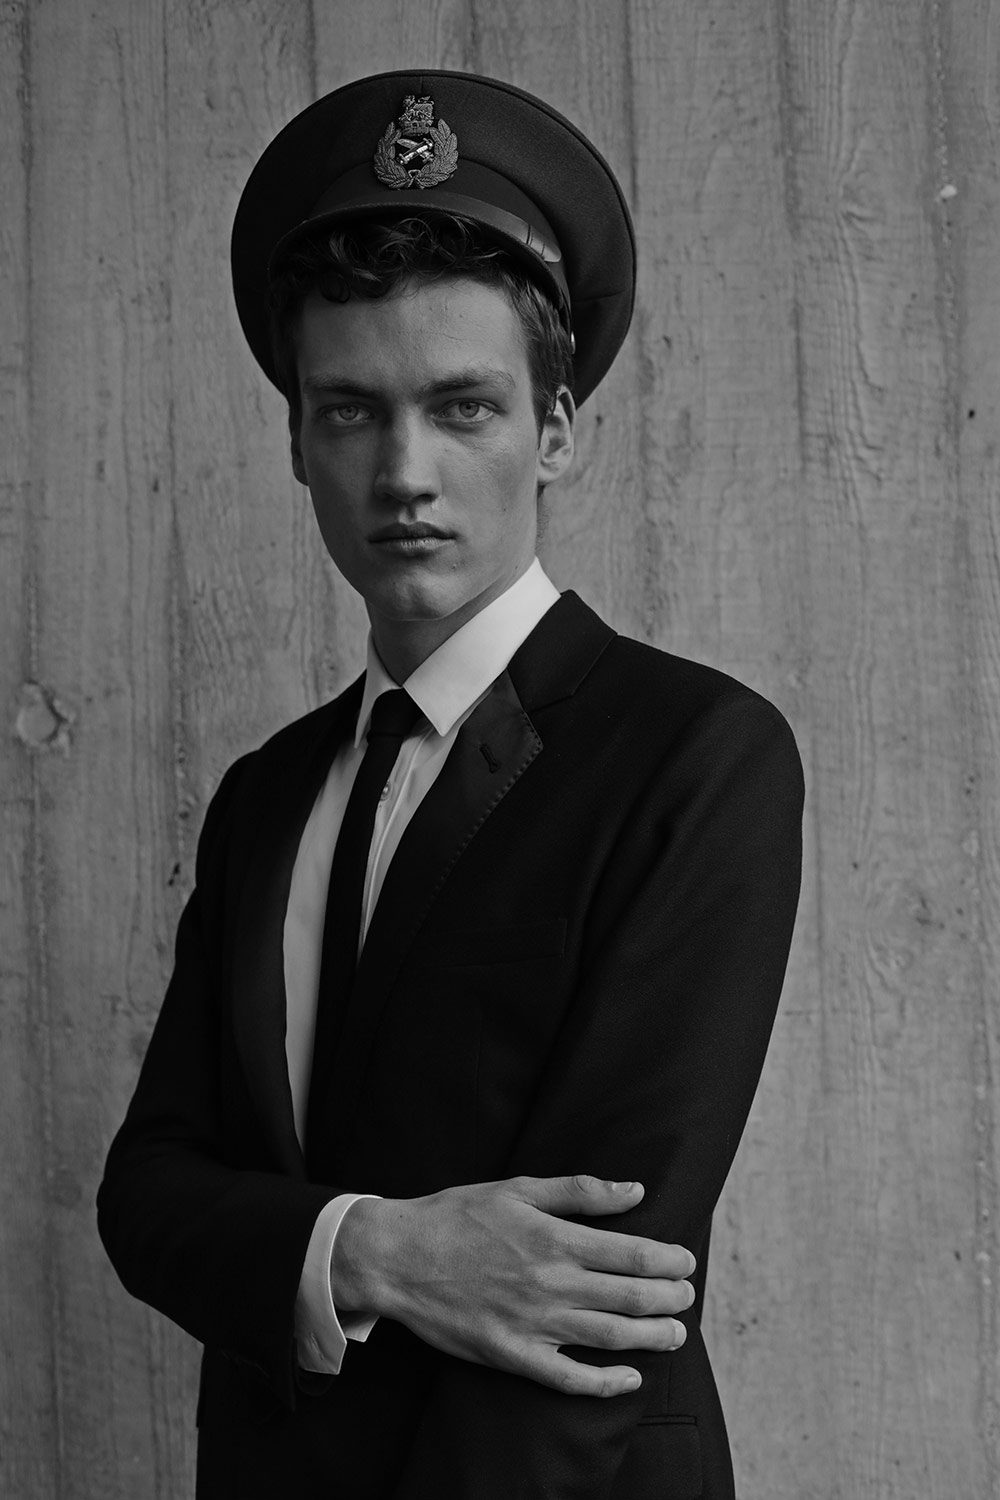 Suit, shirt & tie Saint Laurent by Hedi Slimane, cap Surplus Doursoux.